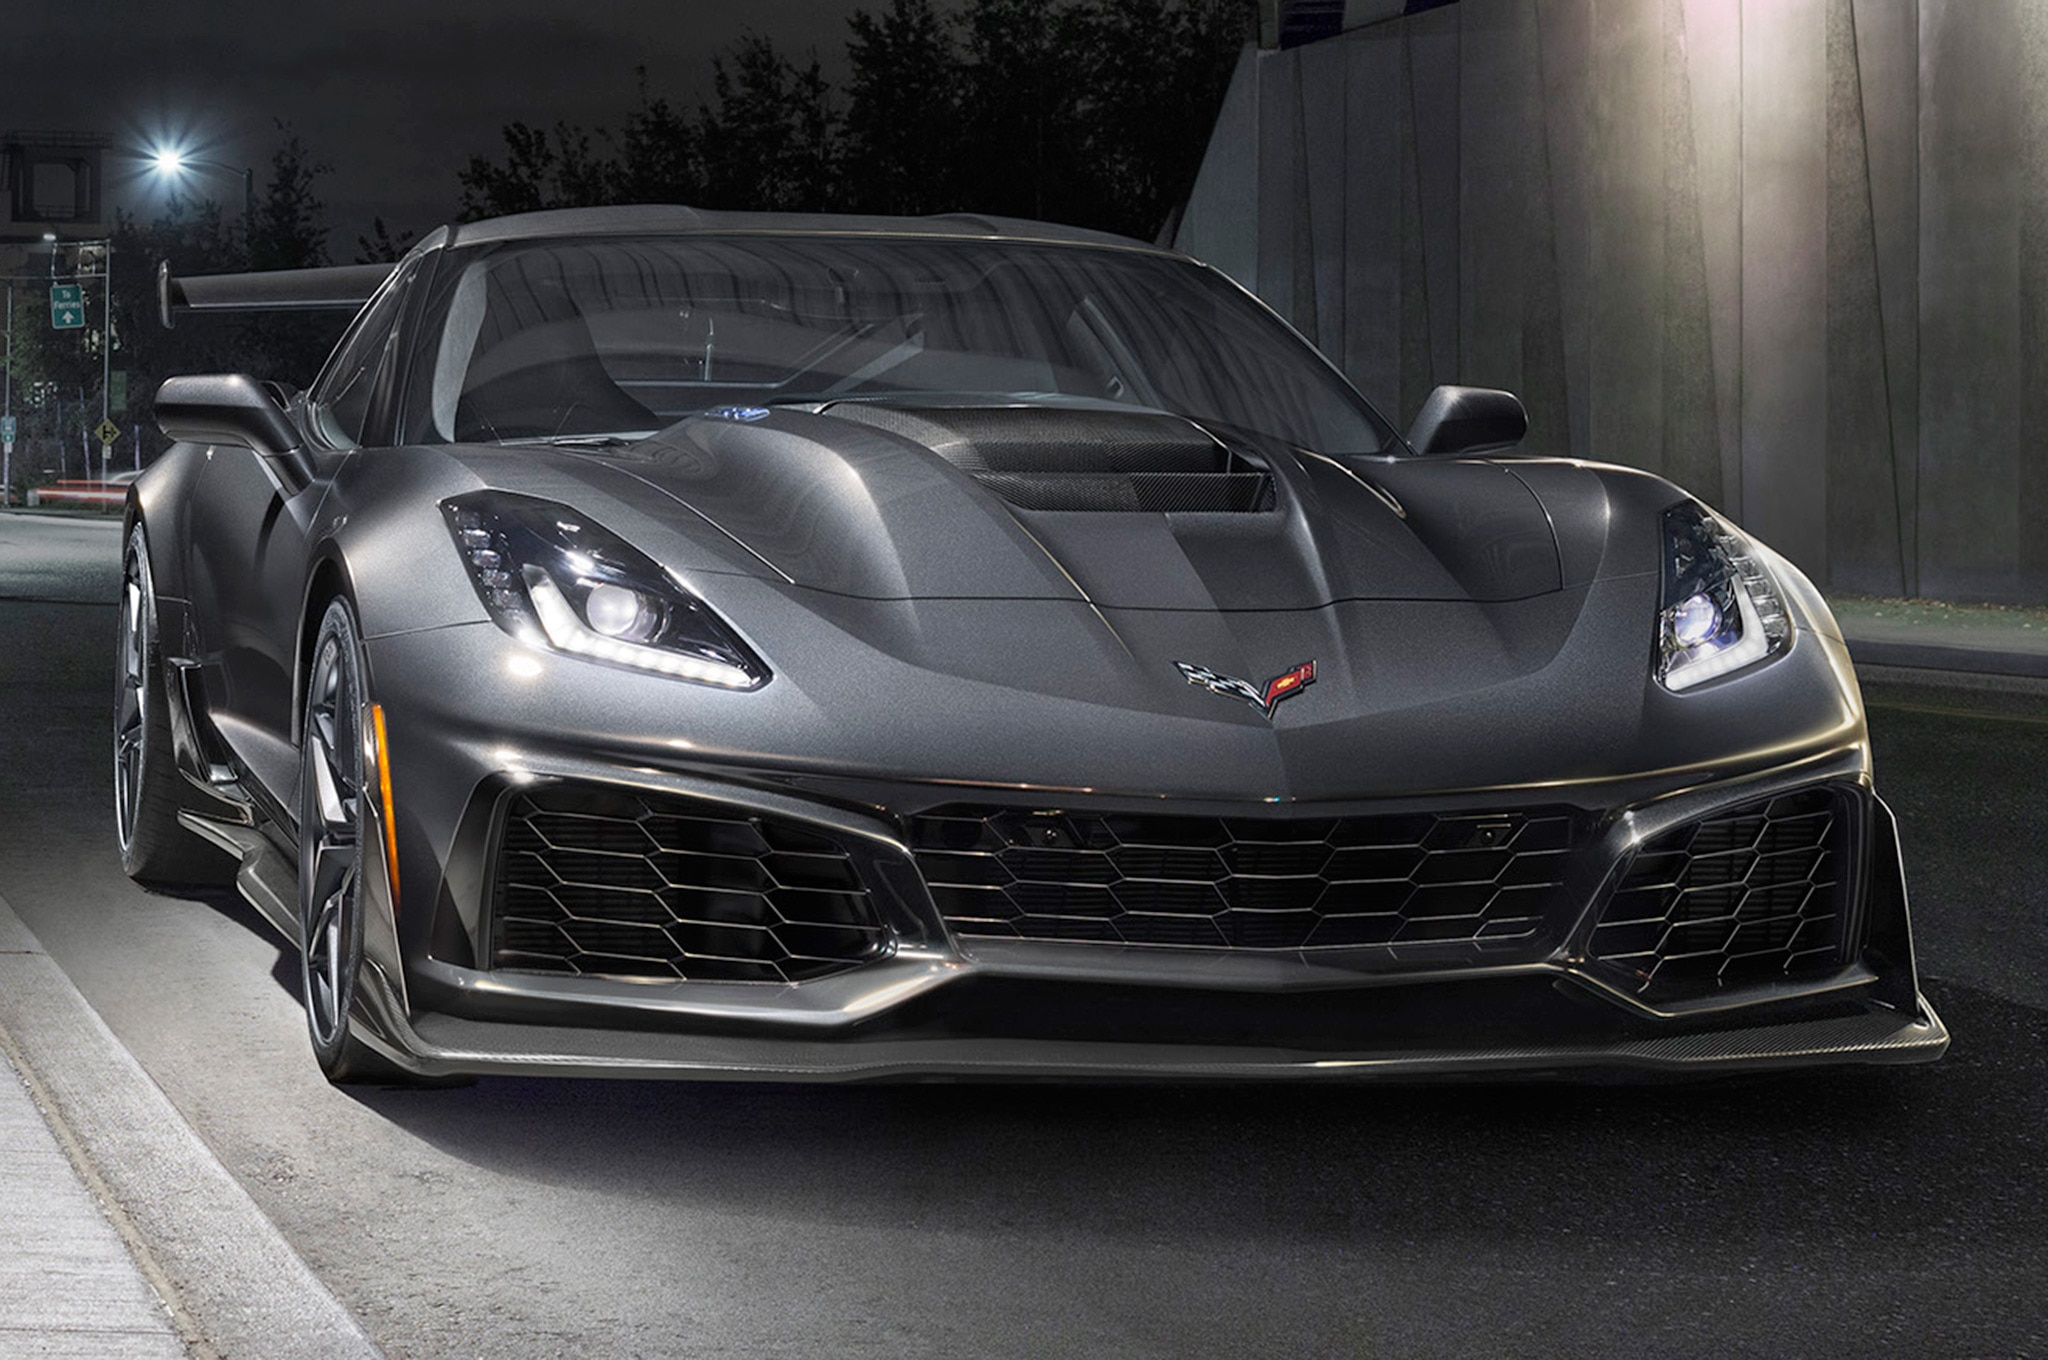 GM reveals its 'fastest, most powerful' auto in 2019 Chevy Corvette ZR1